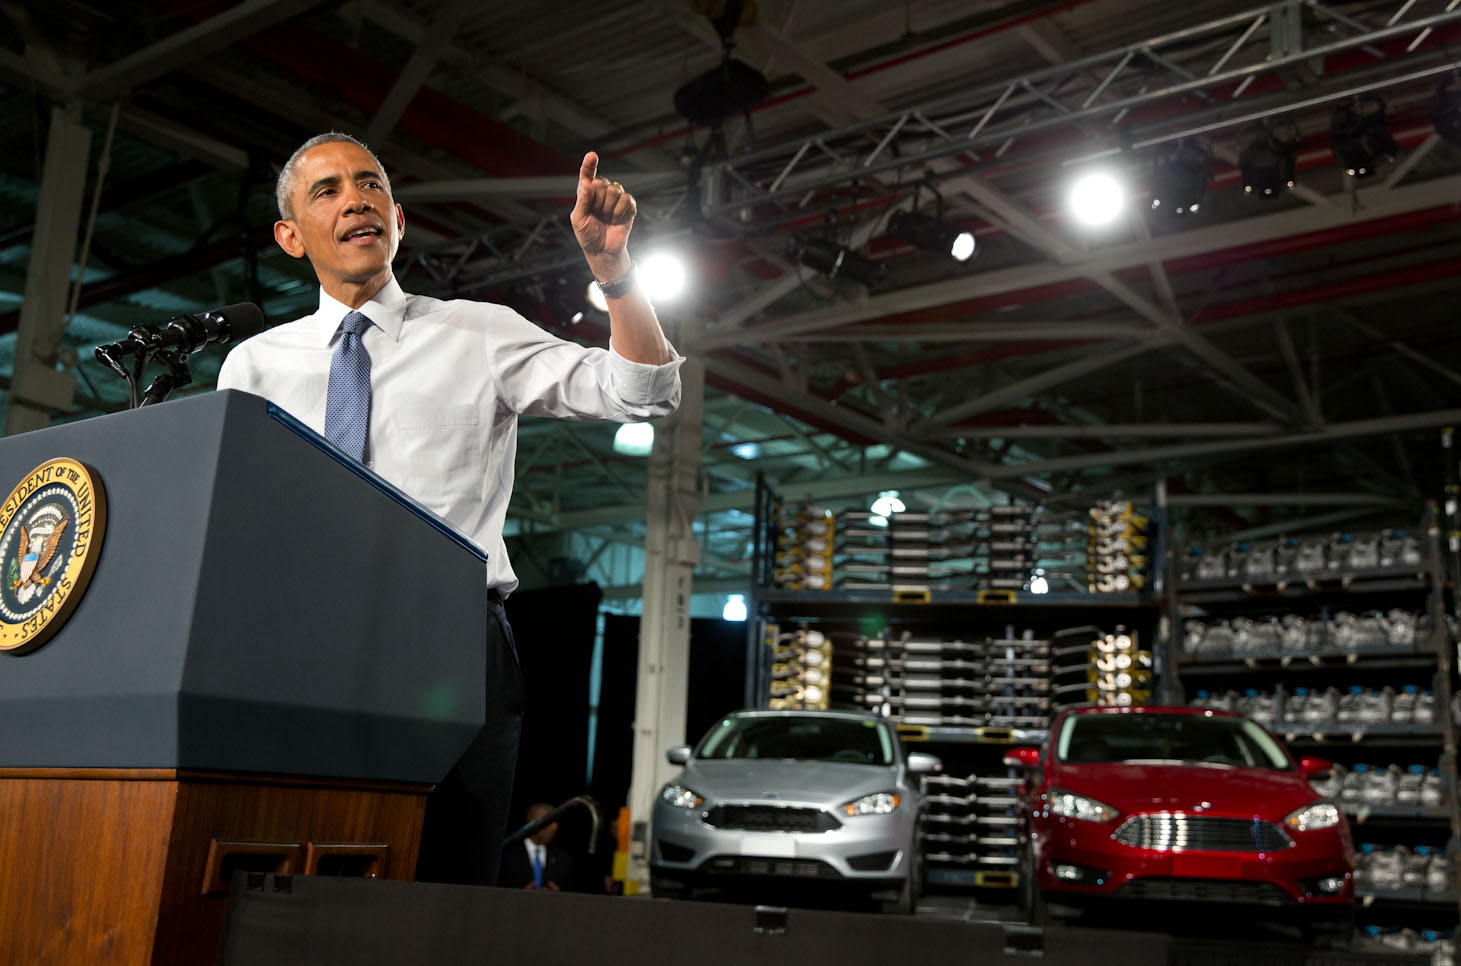 President Obama makes remarks at Ford's Michigan Assembly Plant